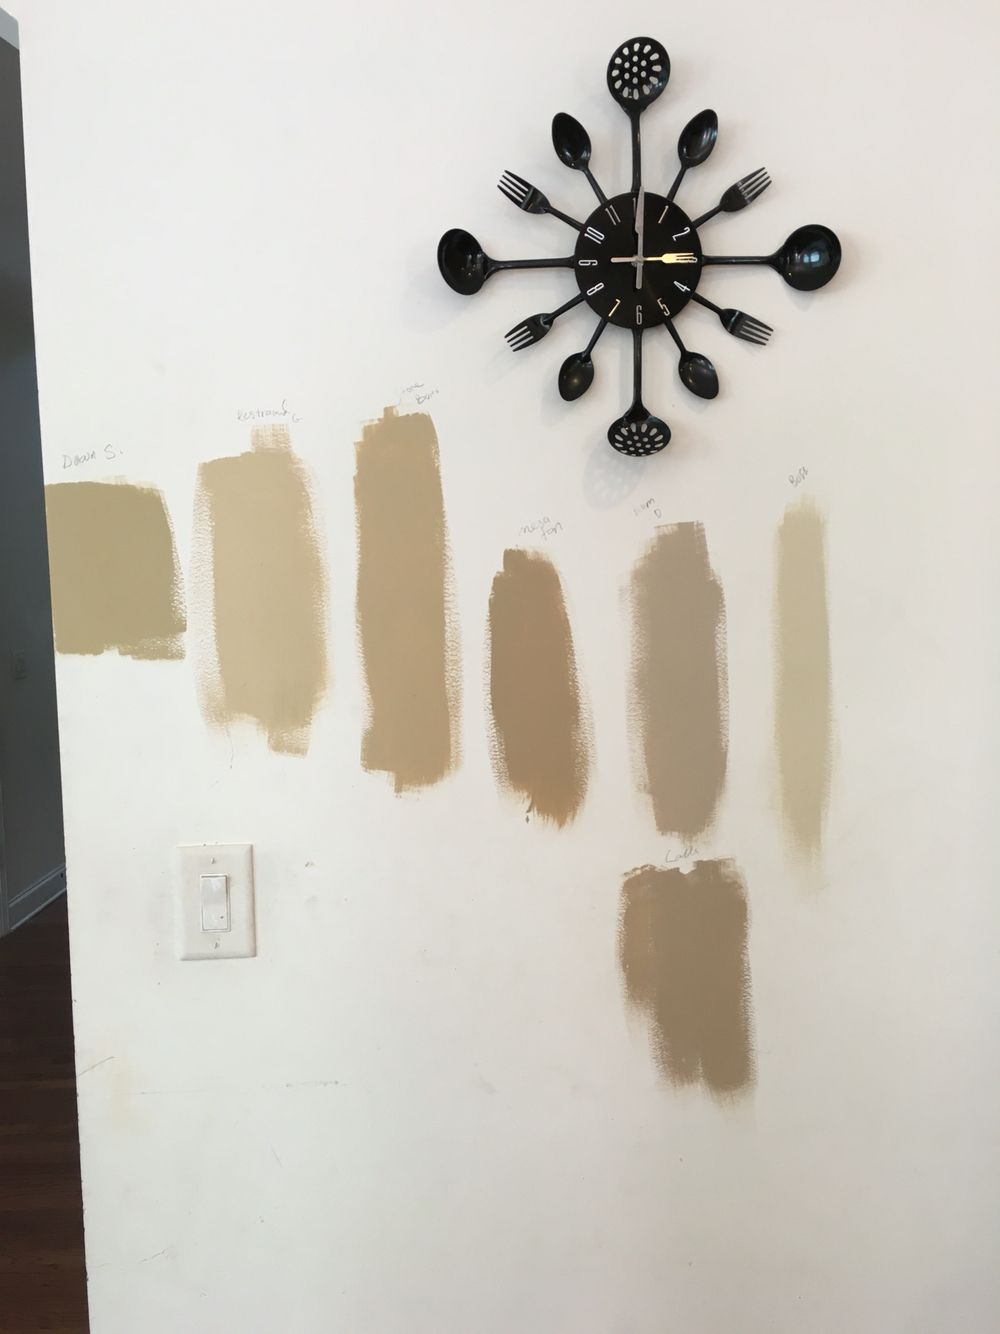 Sherwin williams believable buff - Sherwin Williams Paint Colors From Left To Right Downing Straw Restrained Gold Stonebriar